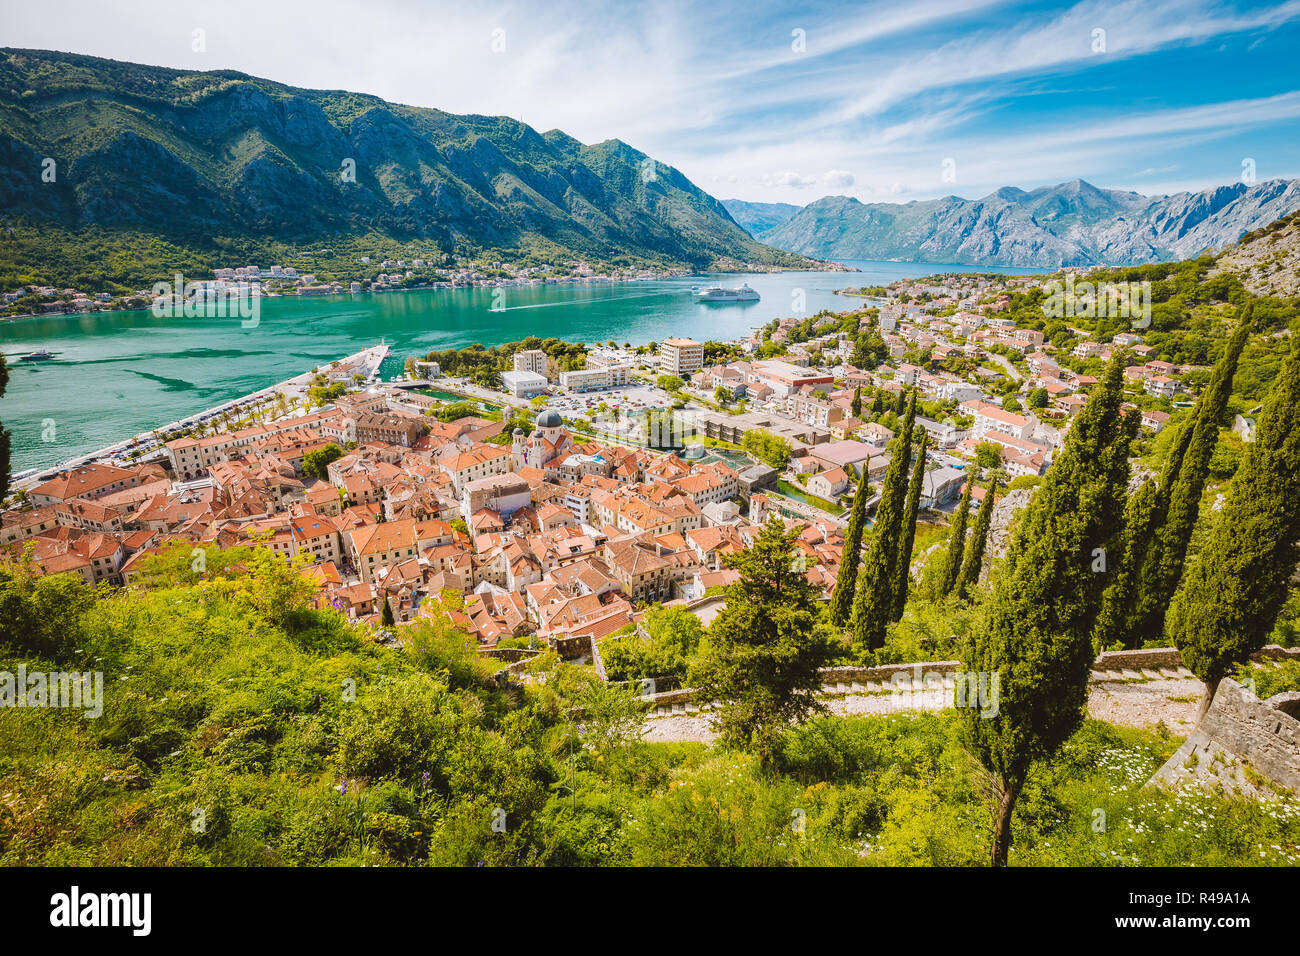 Scenic panoramic view of the historic town of Kotor with famous Bay of Kotor on a beautiful sunny day with blue sky and clouds, Montenegro, Balkans Stock Photo